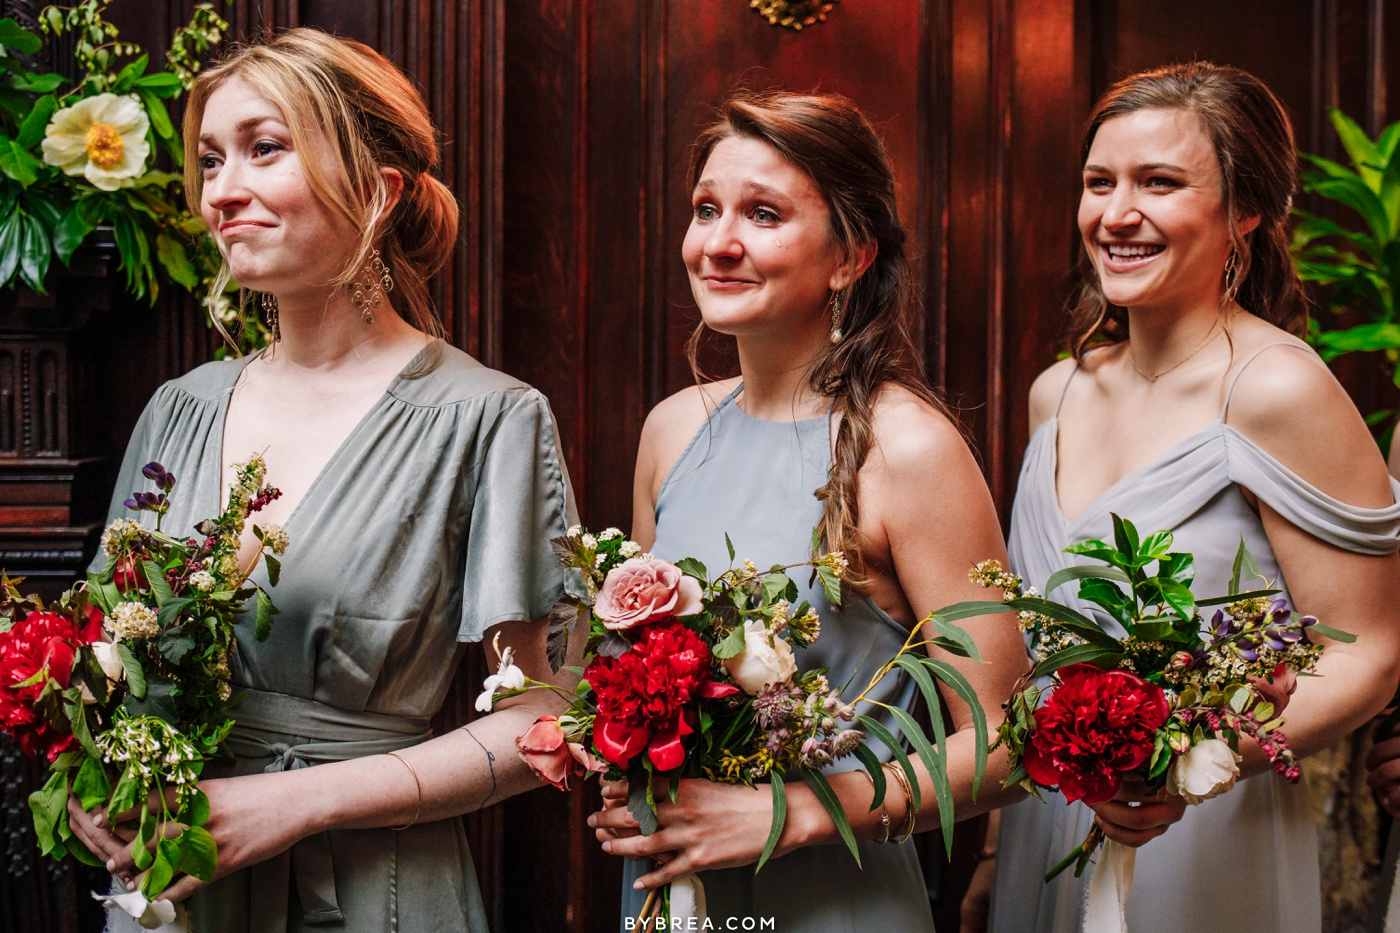 Emotional photo of  bridesmaids showing all the feels Baltimore wedding photography